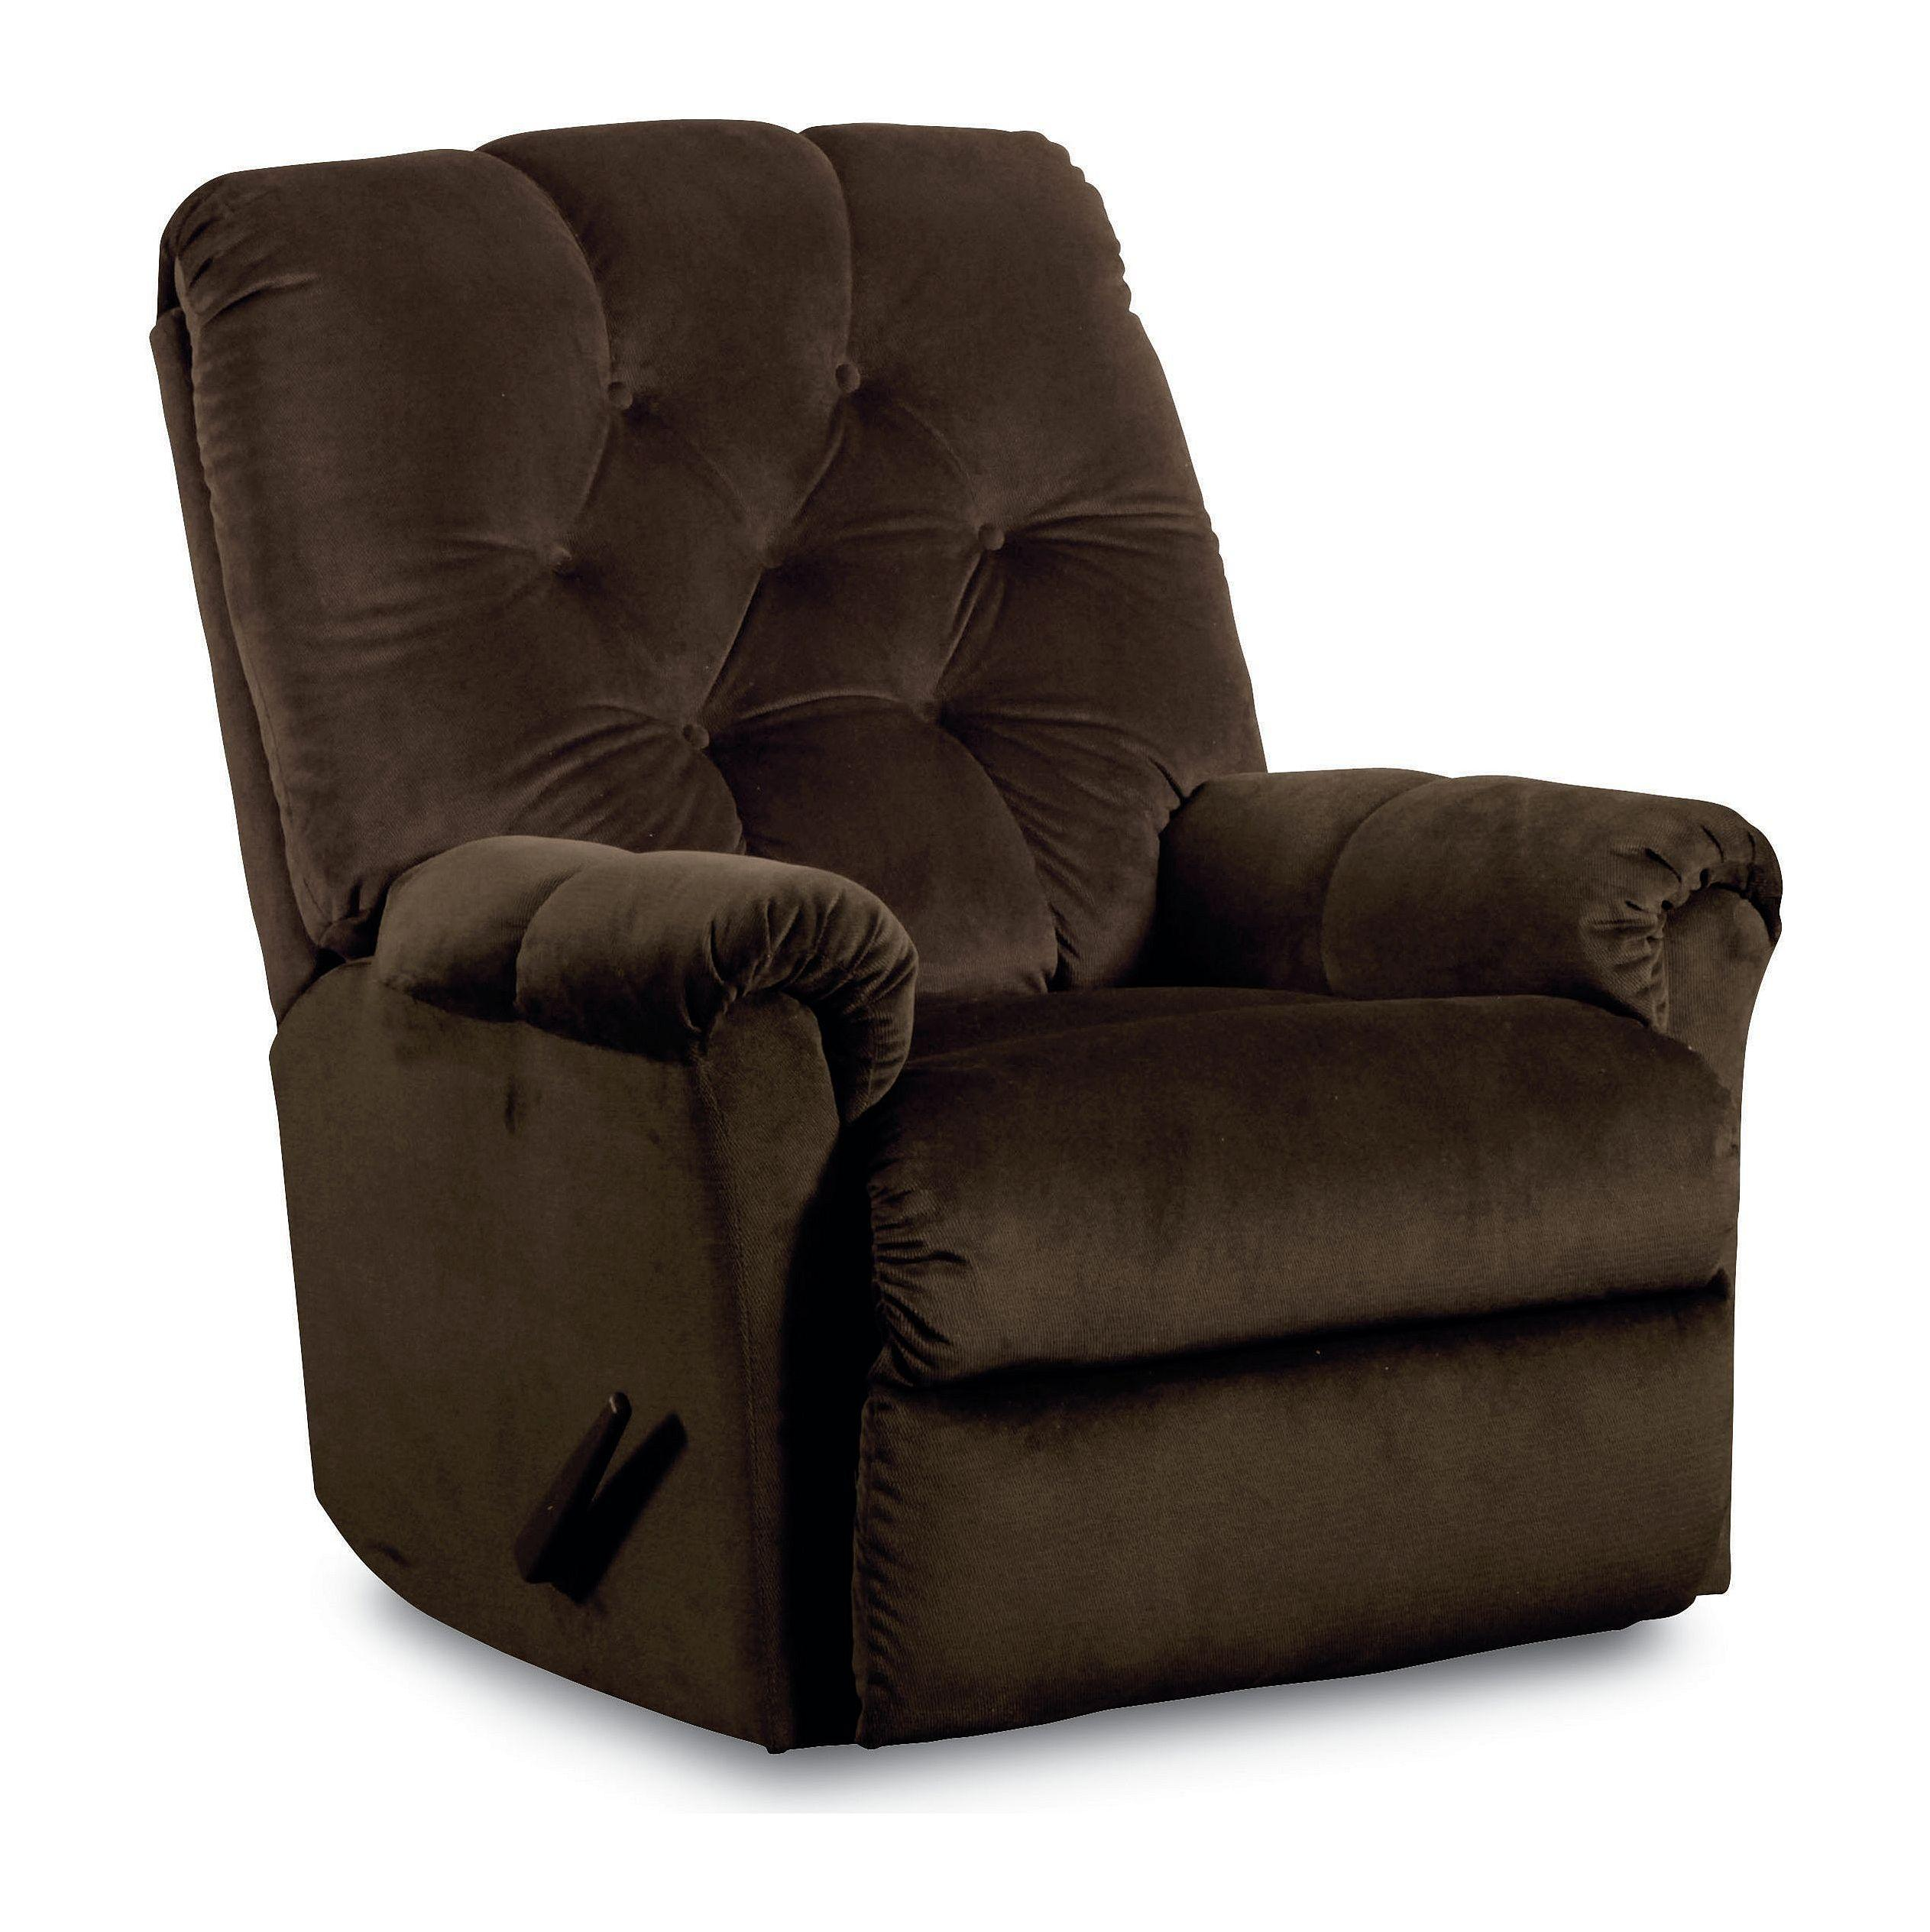 Lane Rocker Recliners 11797S Miles Pad Over Chaise Tufted